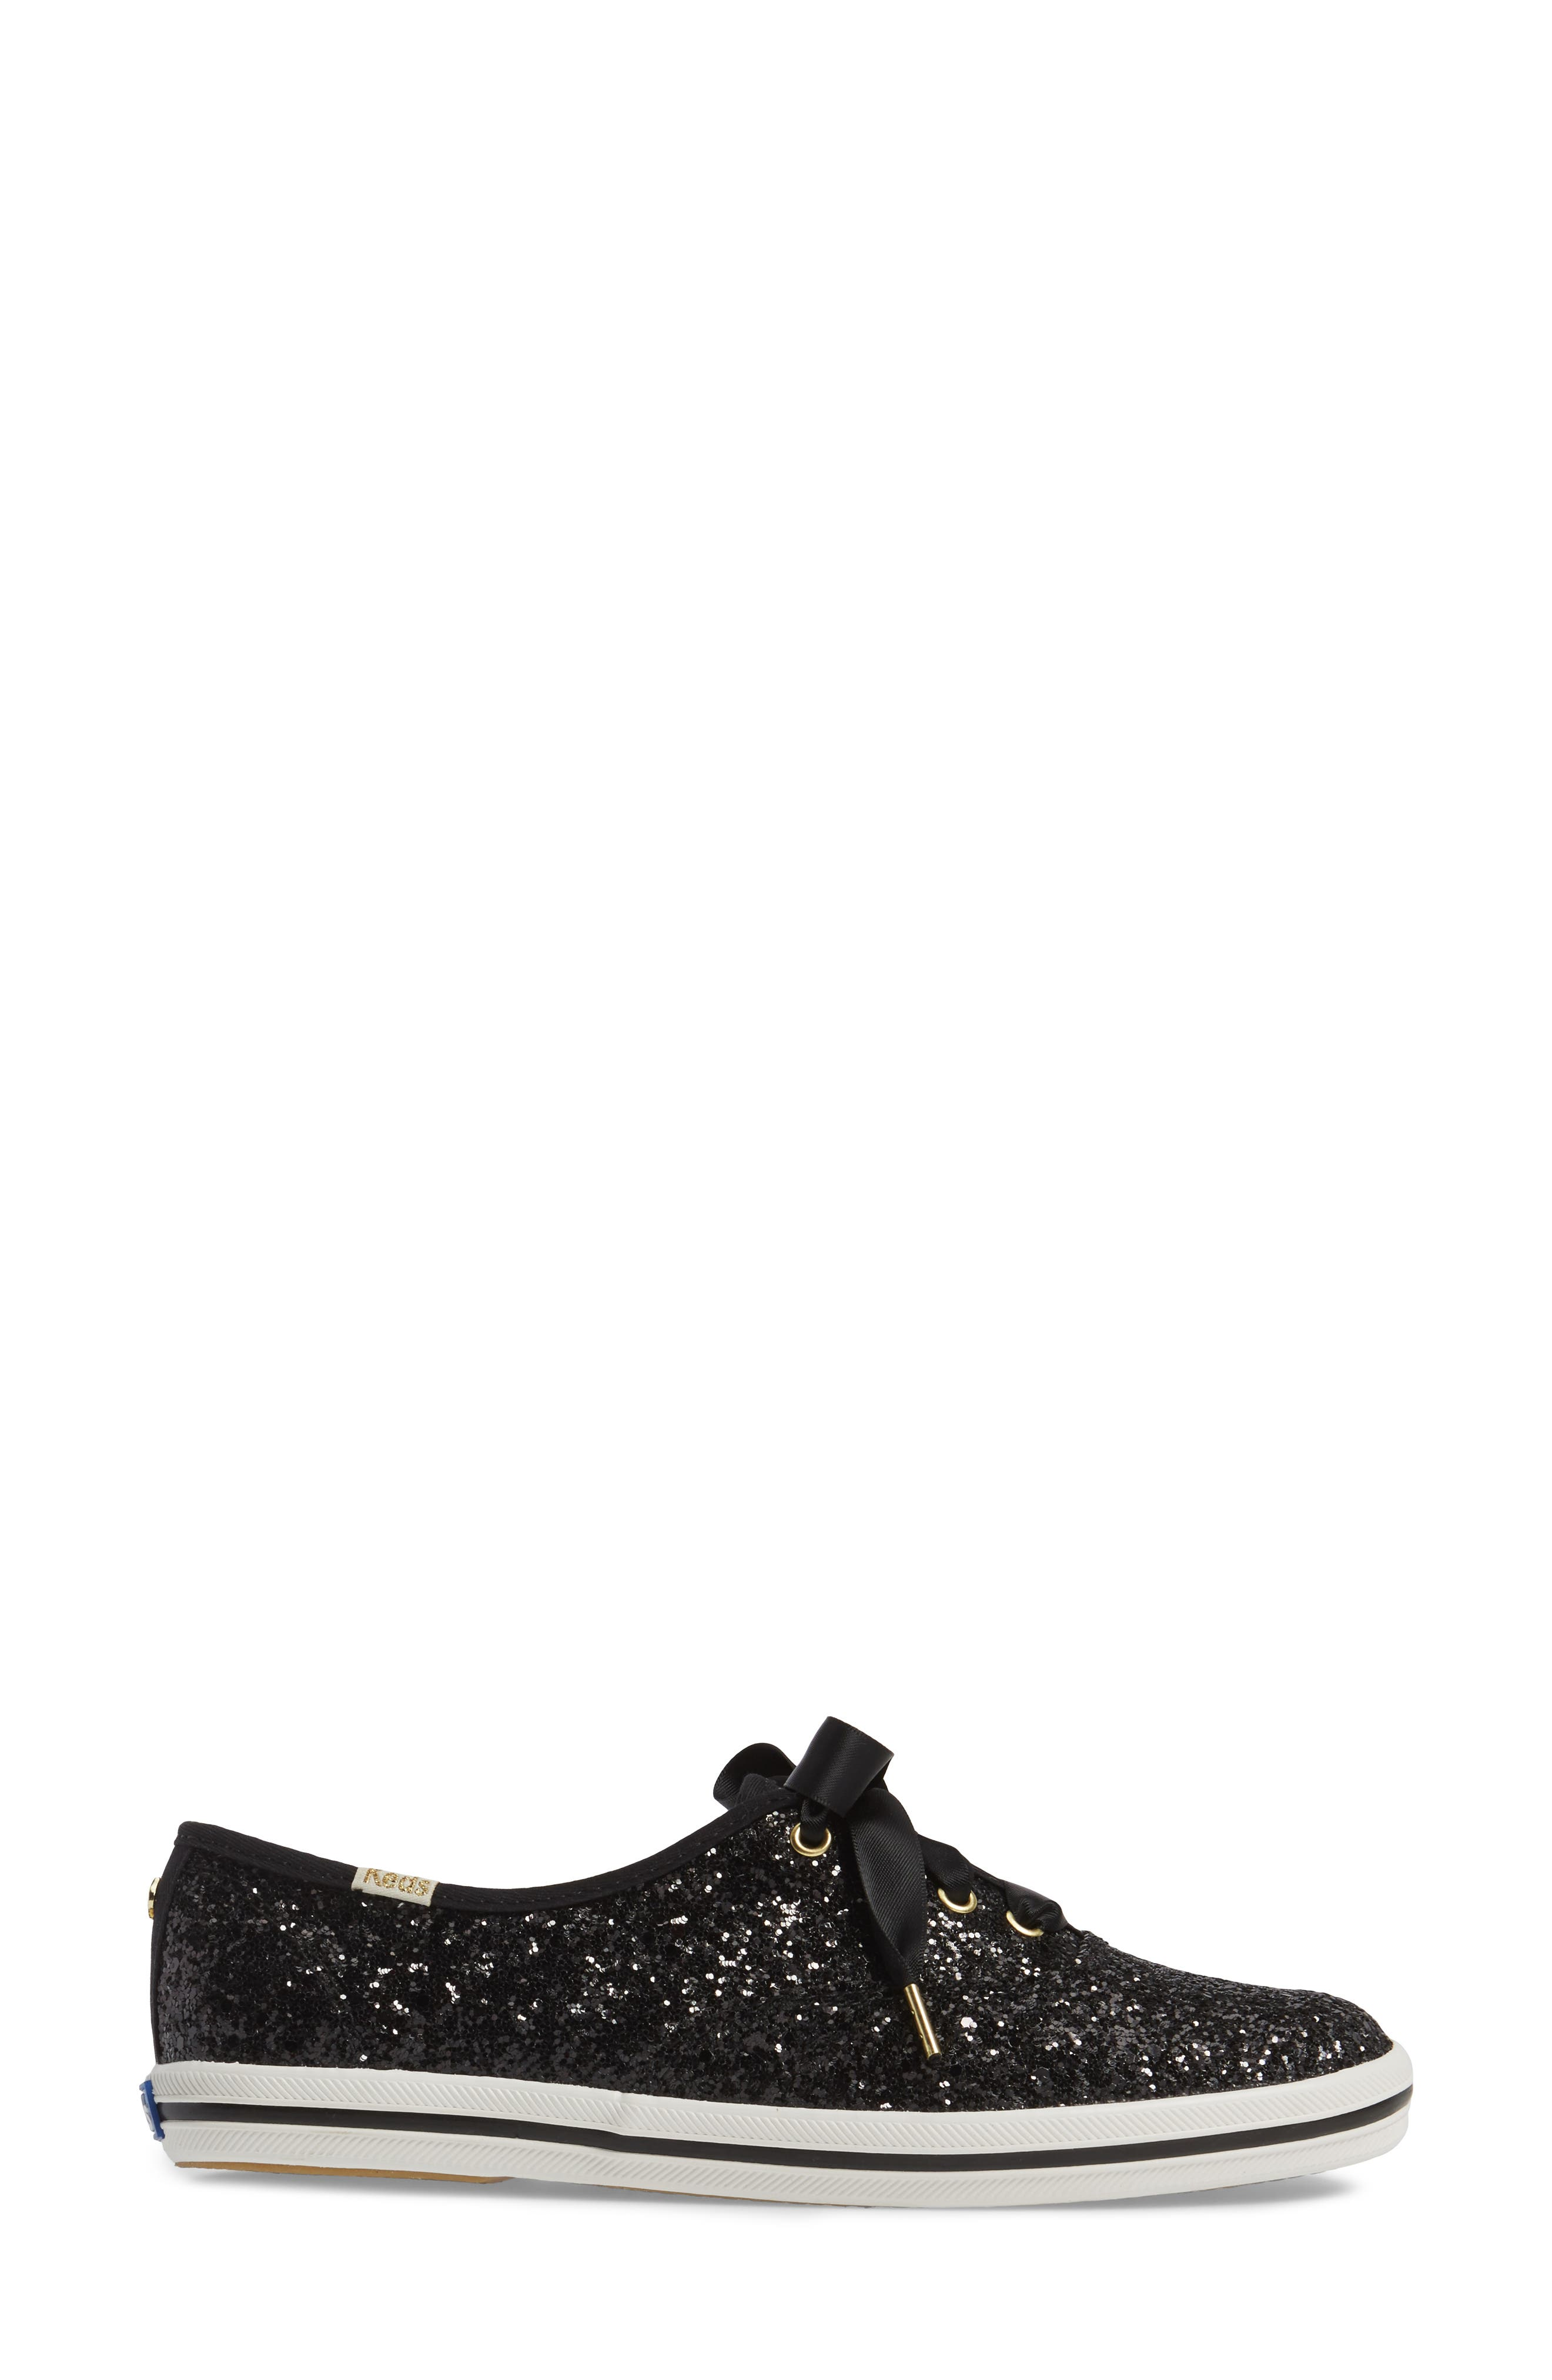 KEDS<SUP>®</SUP> FOR KATE SPADE NEW YORK, glitter sneaker, Alternate thumbnail 3, color, BLACK